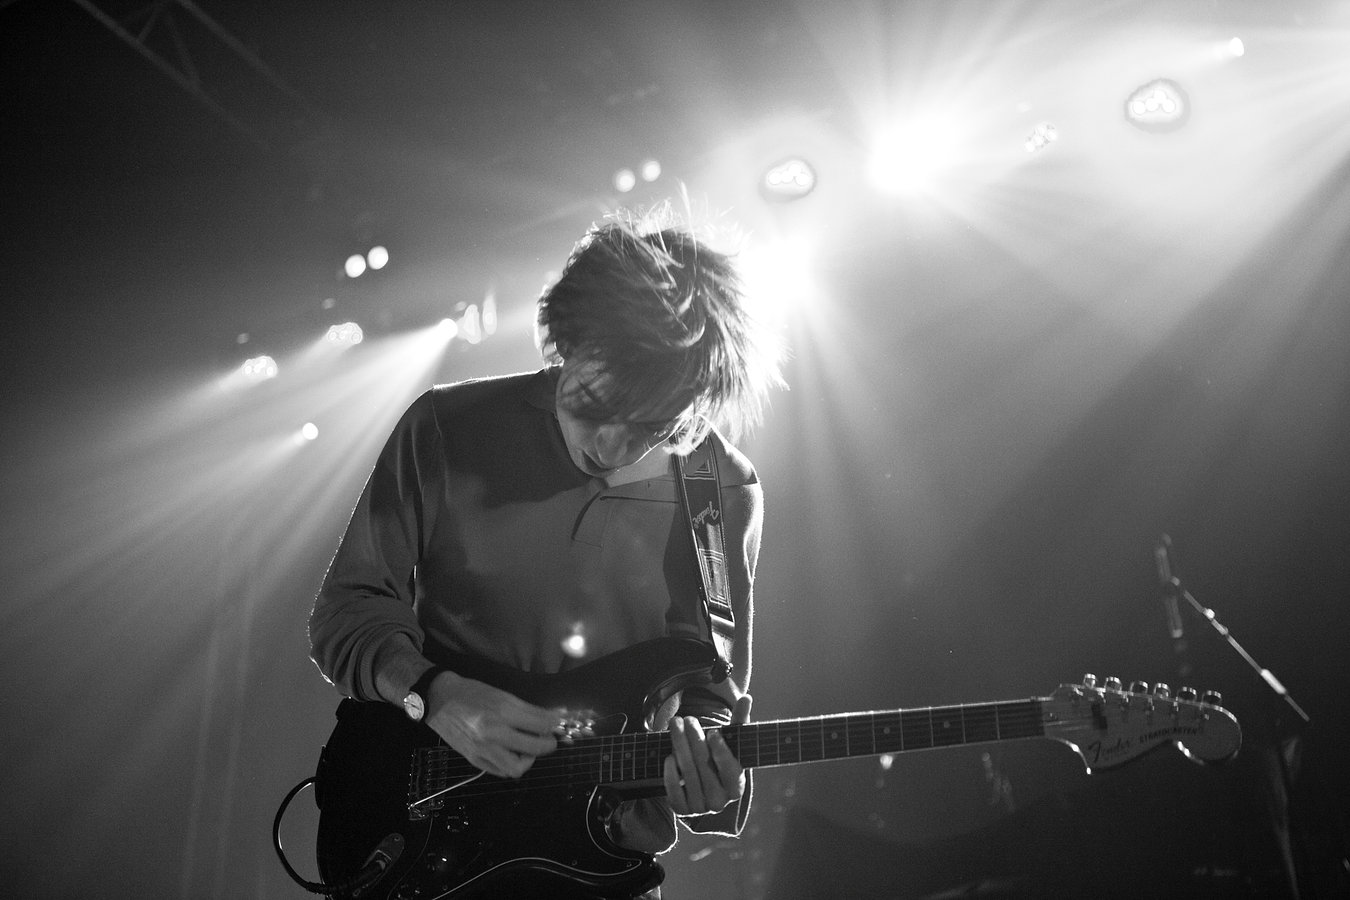 bombay_bicycle_club01_website_image_qqjx_standard